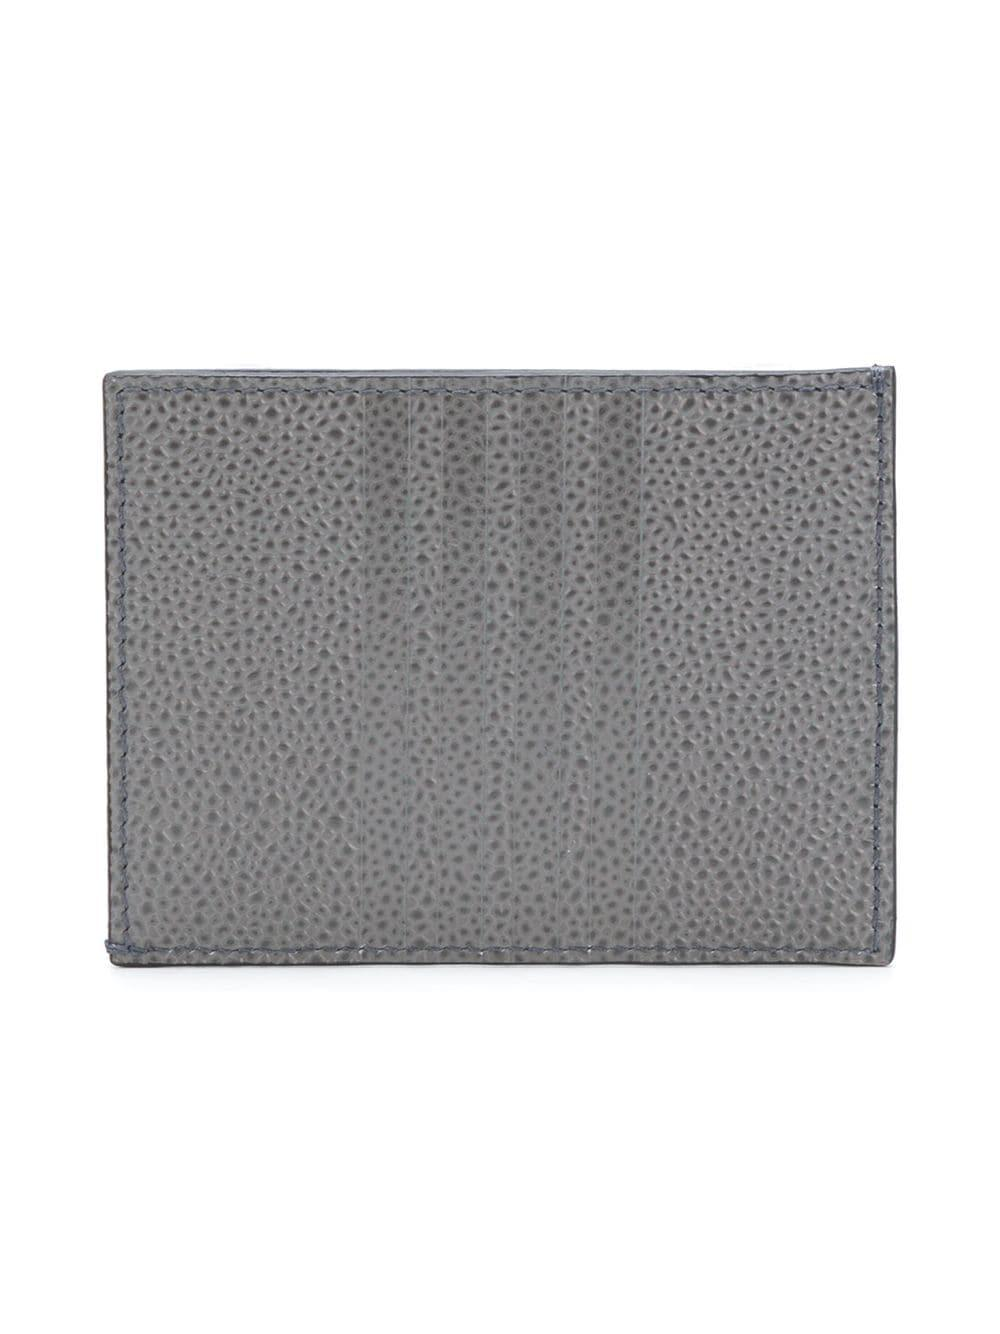 a9124e4012 Thom Browne 4-bar Edge Stain Note Cardholder in Gray for Men - Save 19% -  Lyst